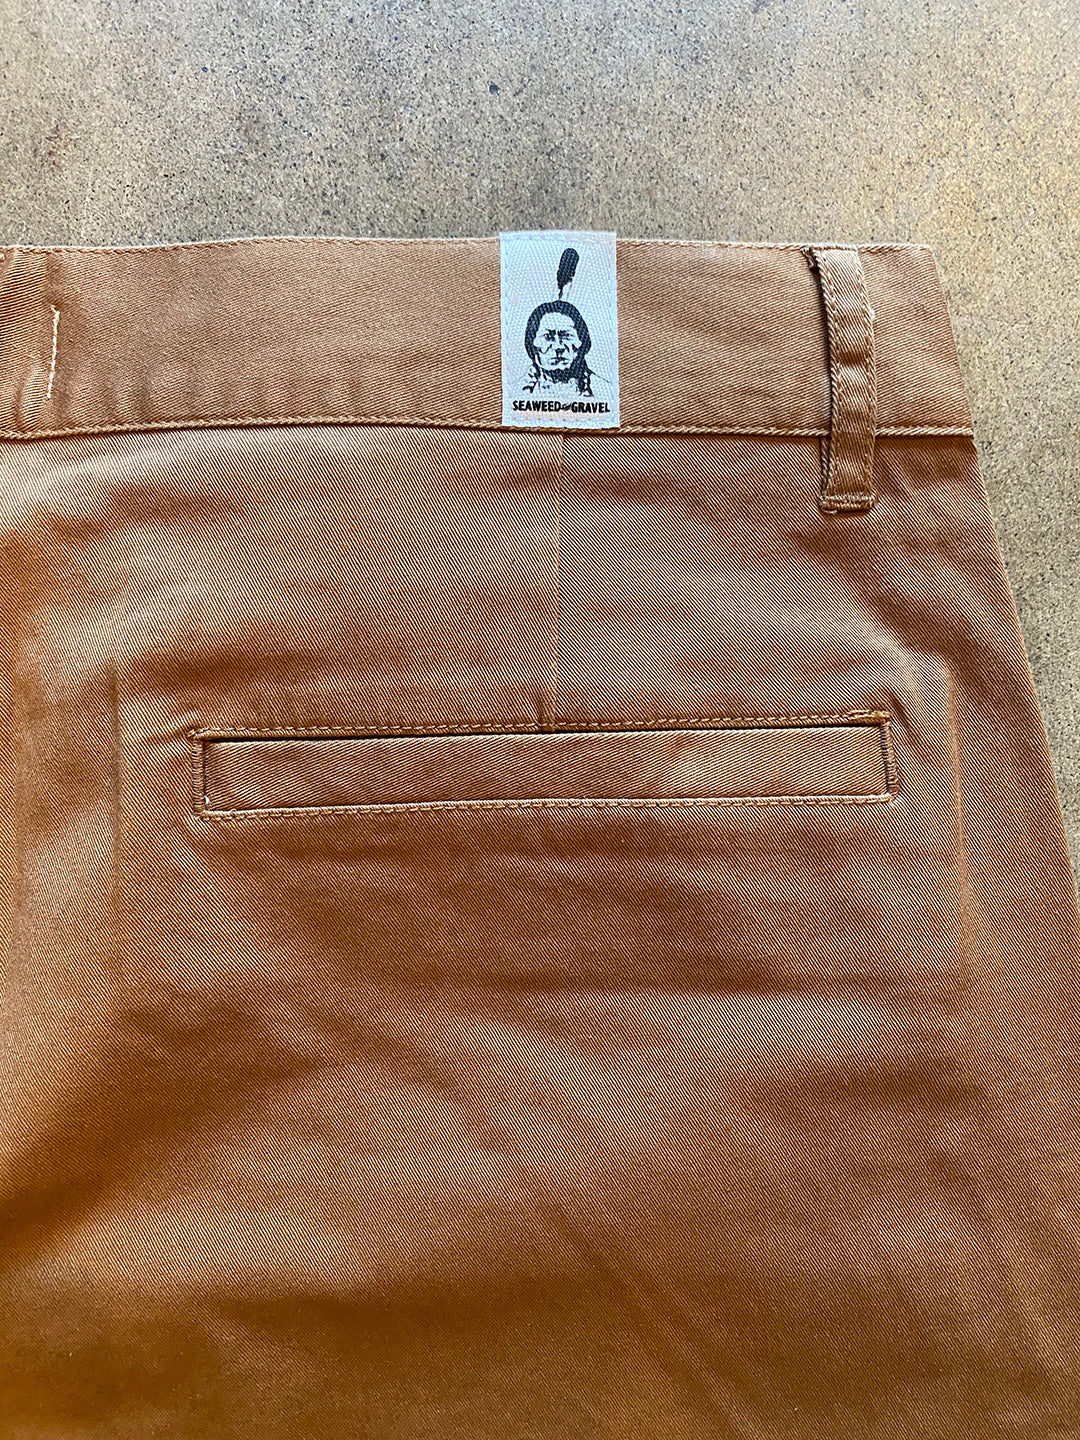 Shorts by S&G Tobacco